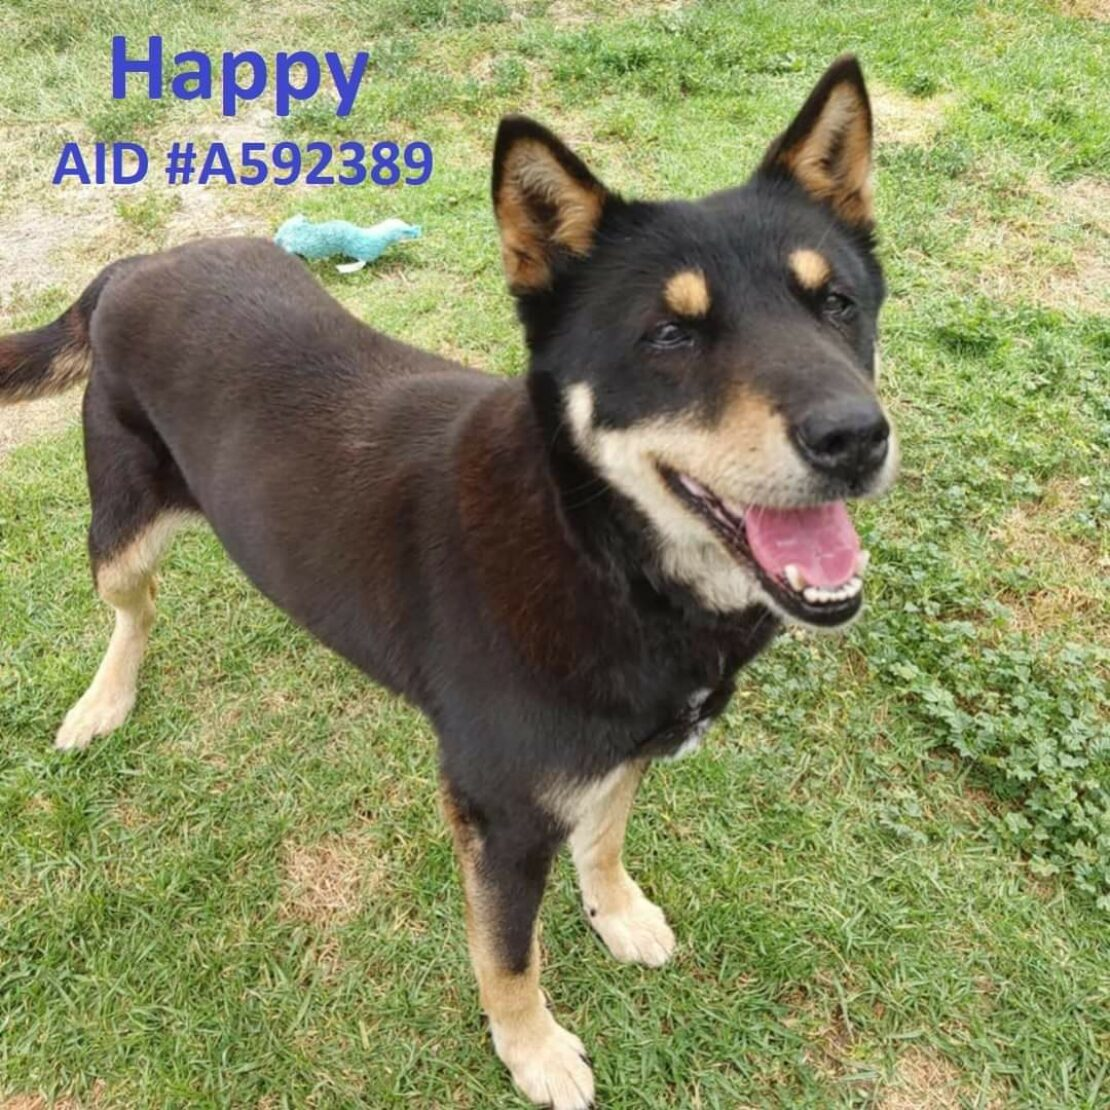 brown kelpie dog with tan chin and white paws stands on grass